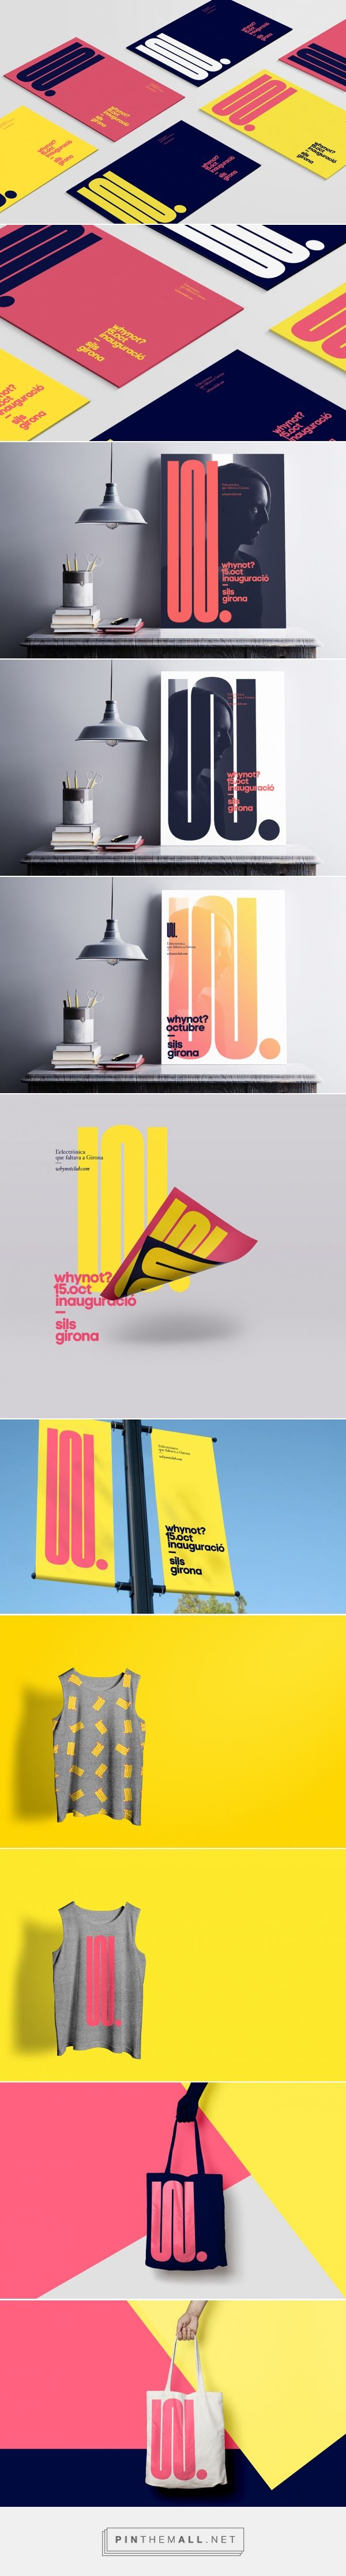 WHYNOT Branding 120 best Brand Identity images